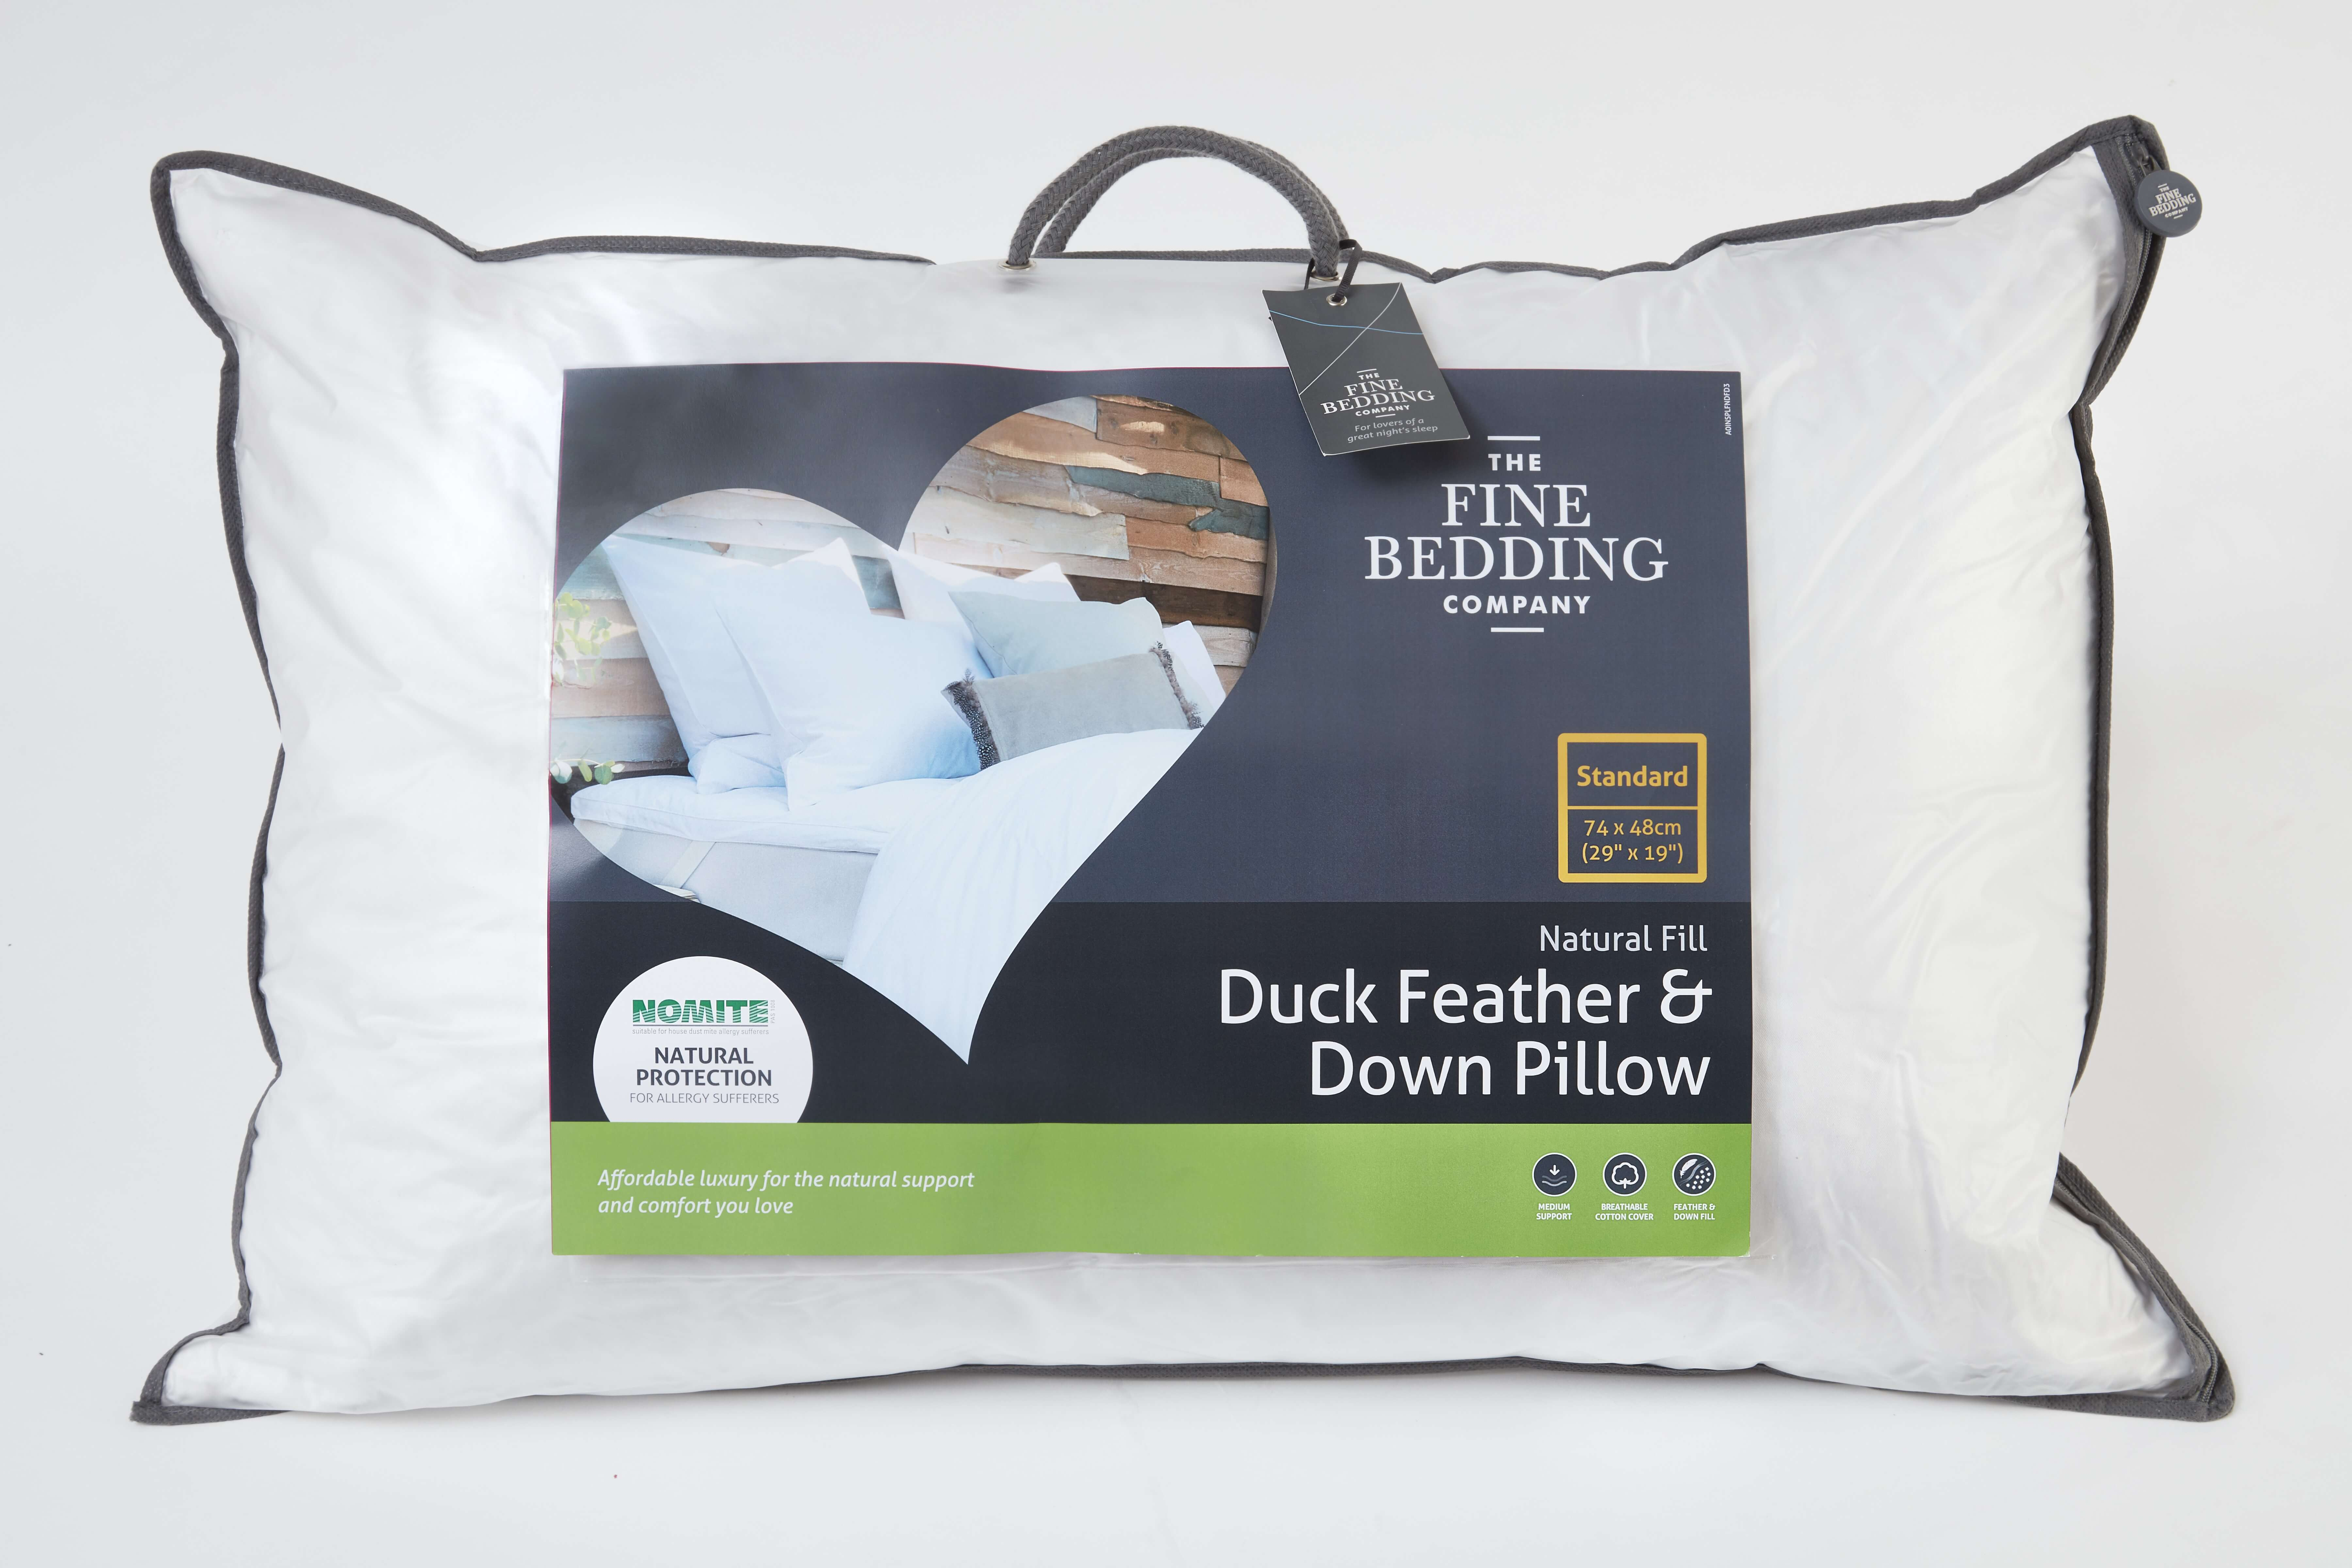 Duck Feather & Down Pillow-The Fine Bedding Company